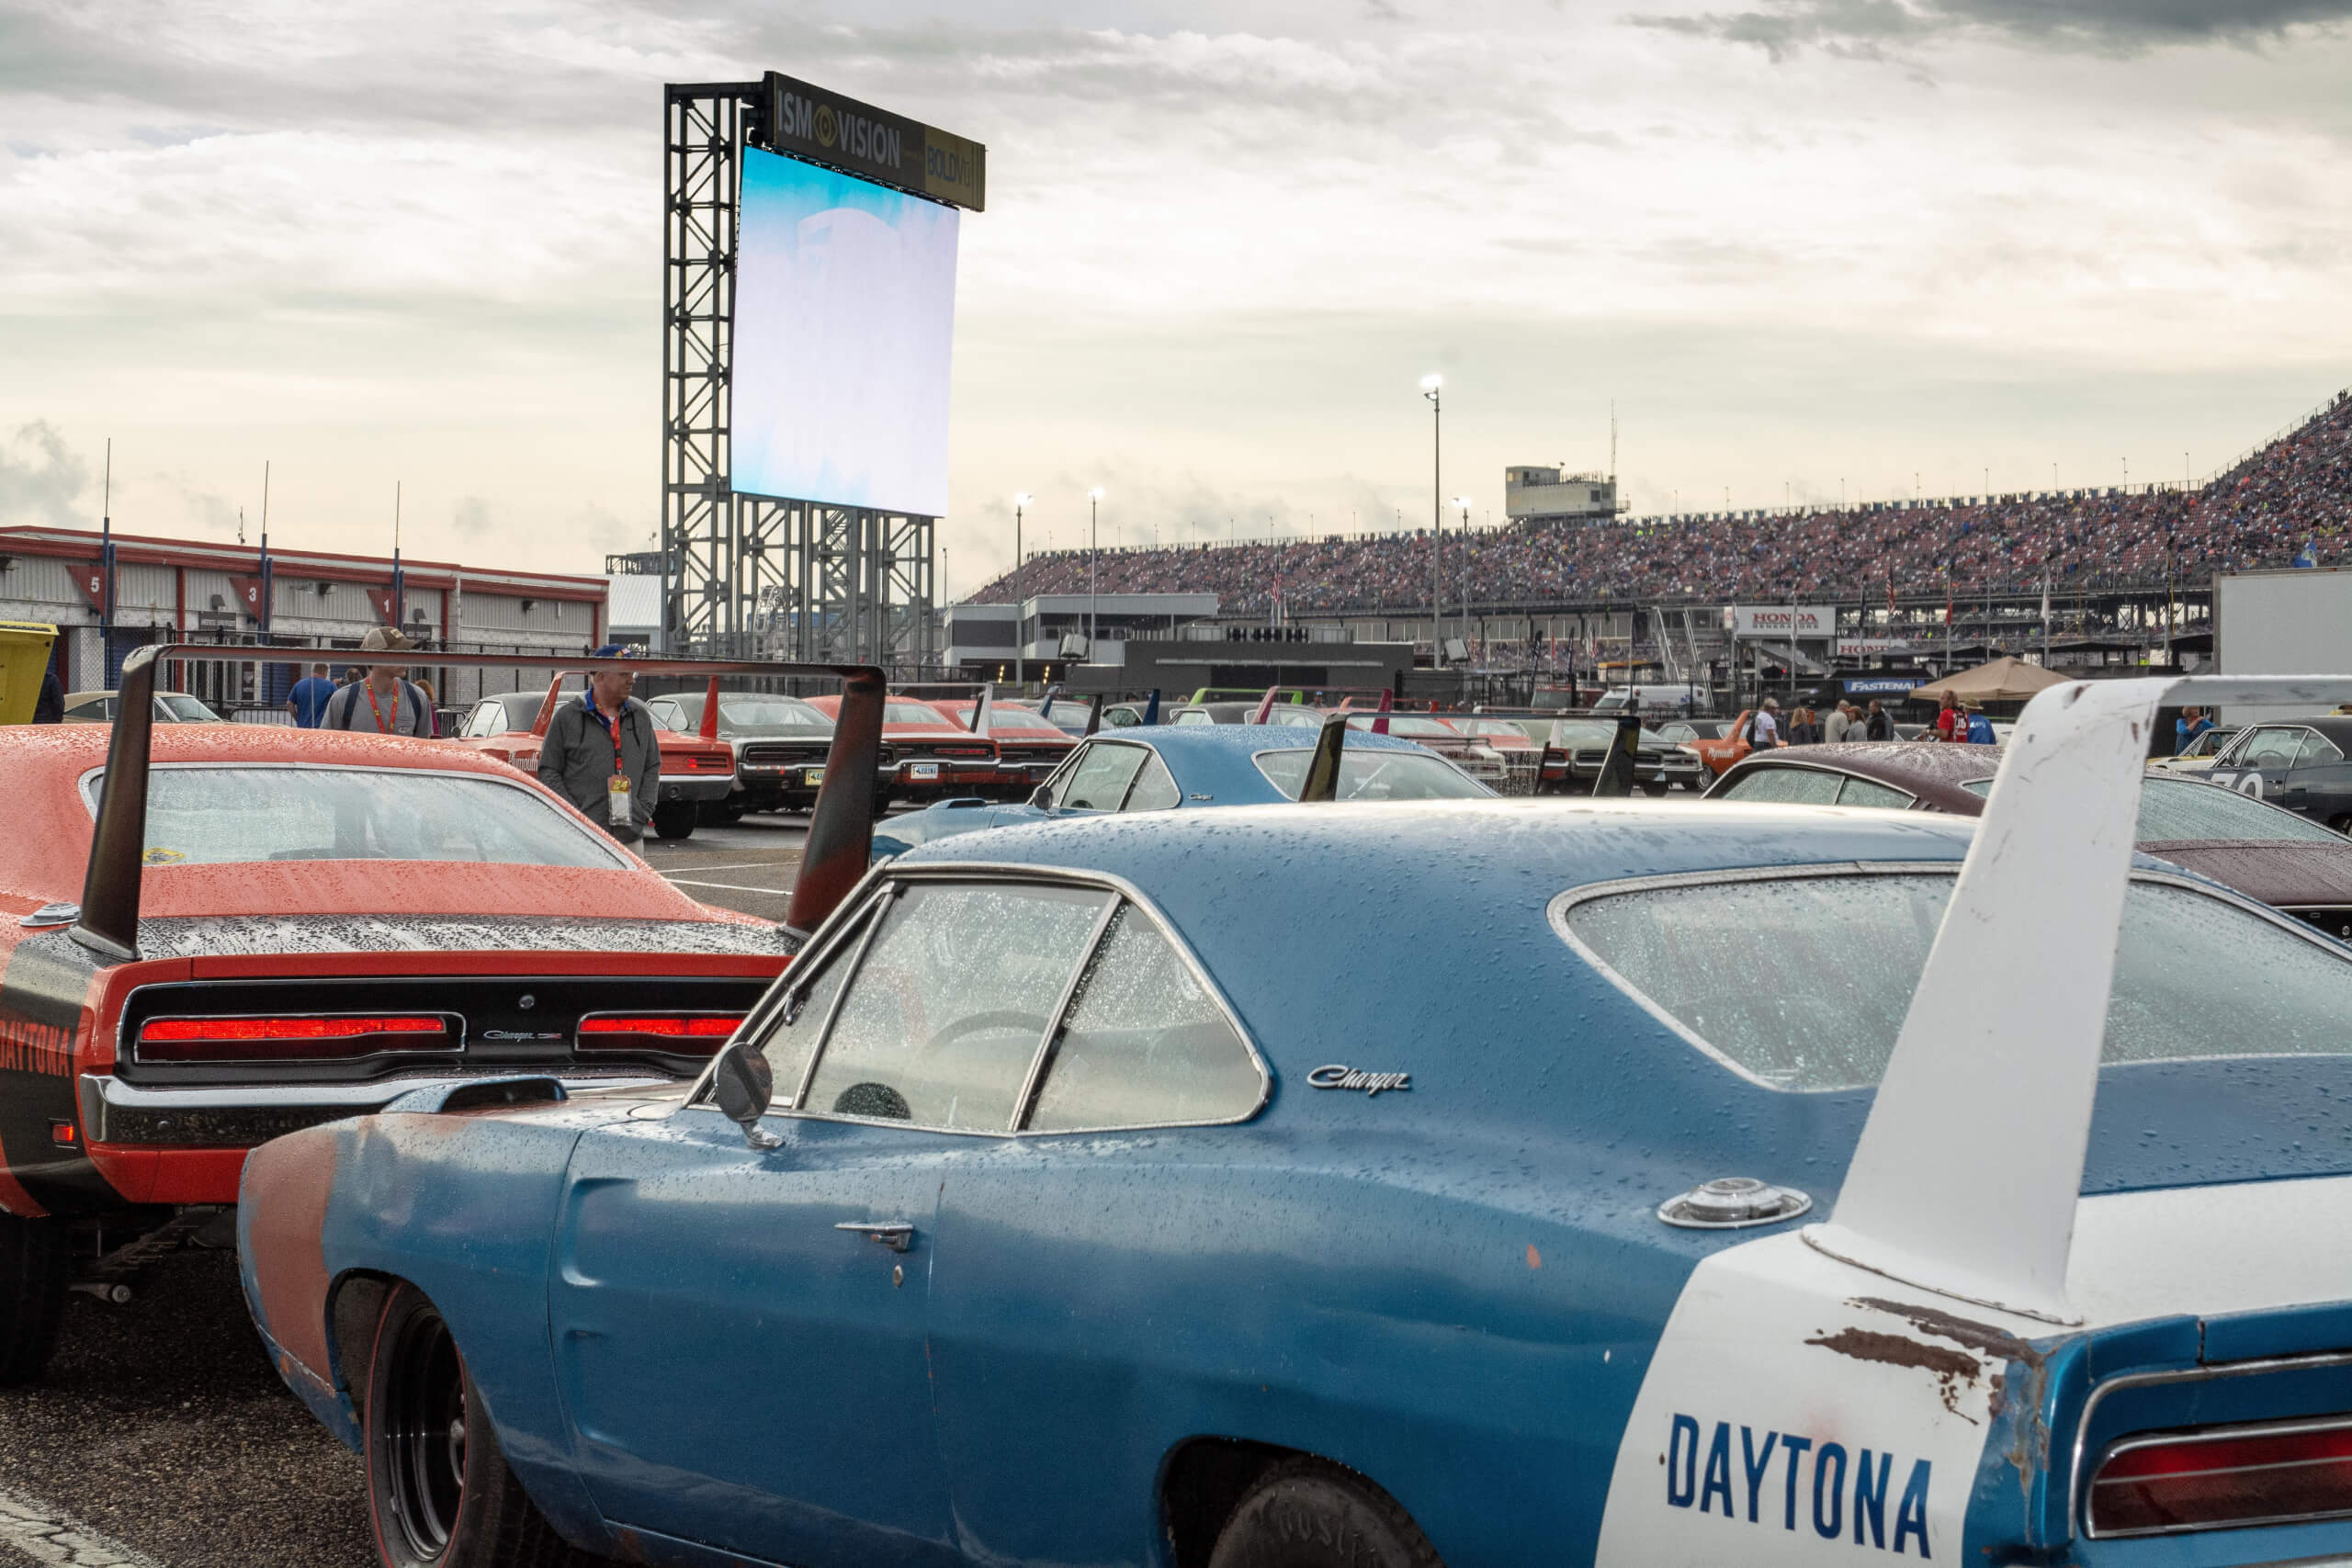 Scores of Plymouth Superbirds and Dodge Daytonas were on display at the 2019 Aero Warrior Reunion.